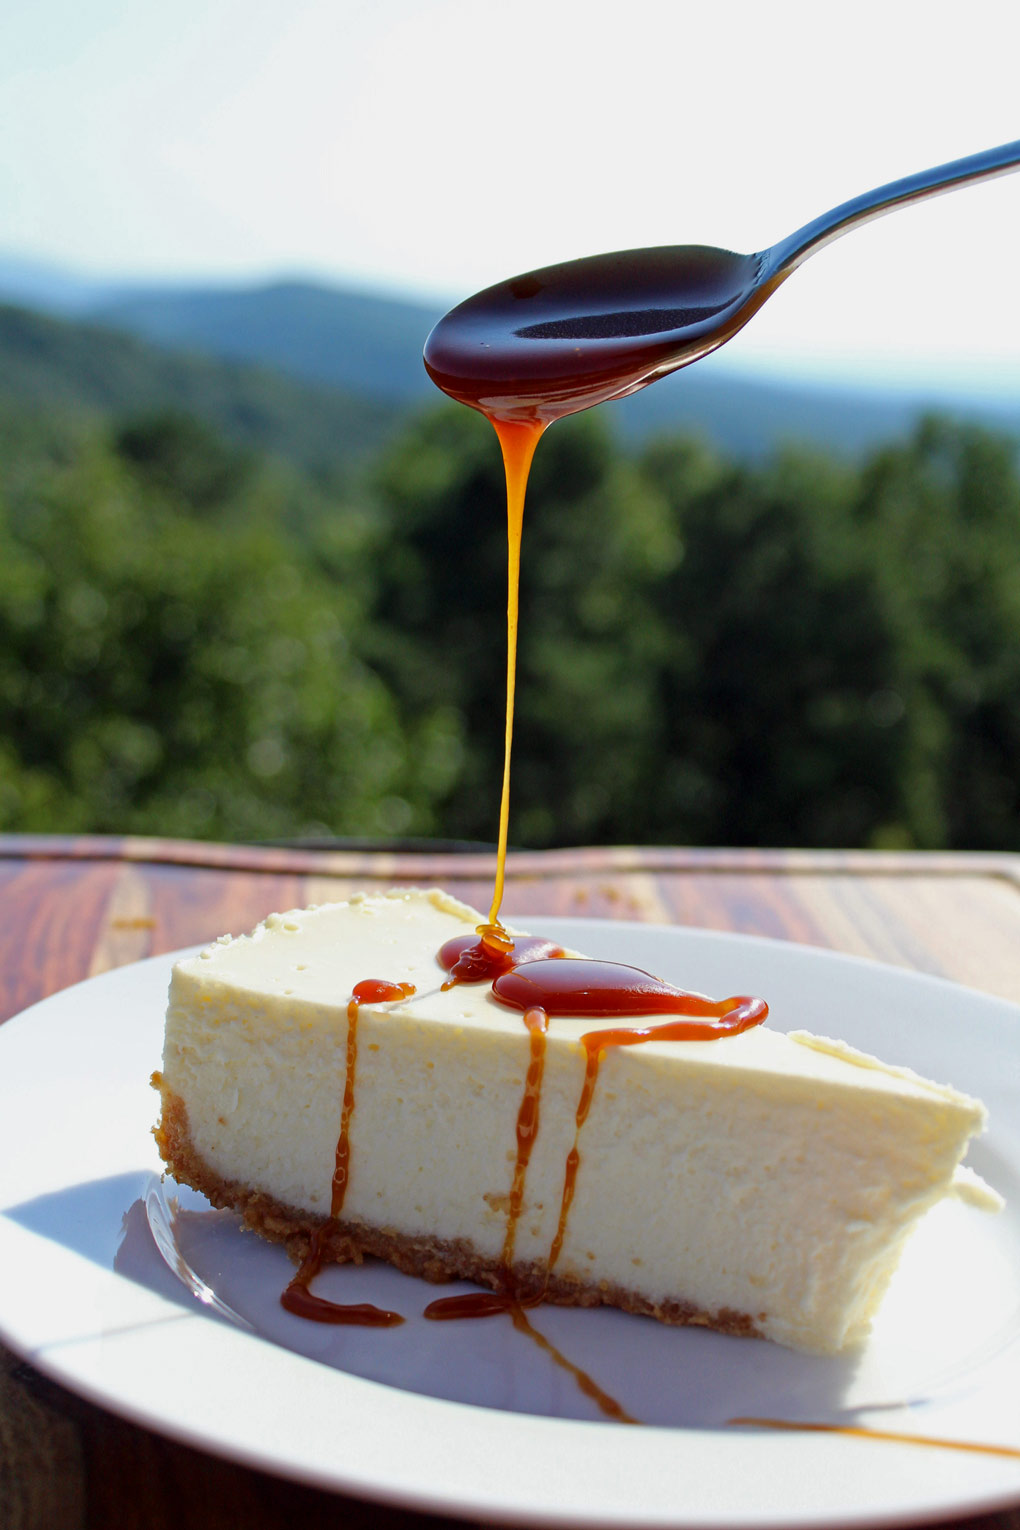 caramel sauce drizzled onto cheesecake